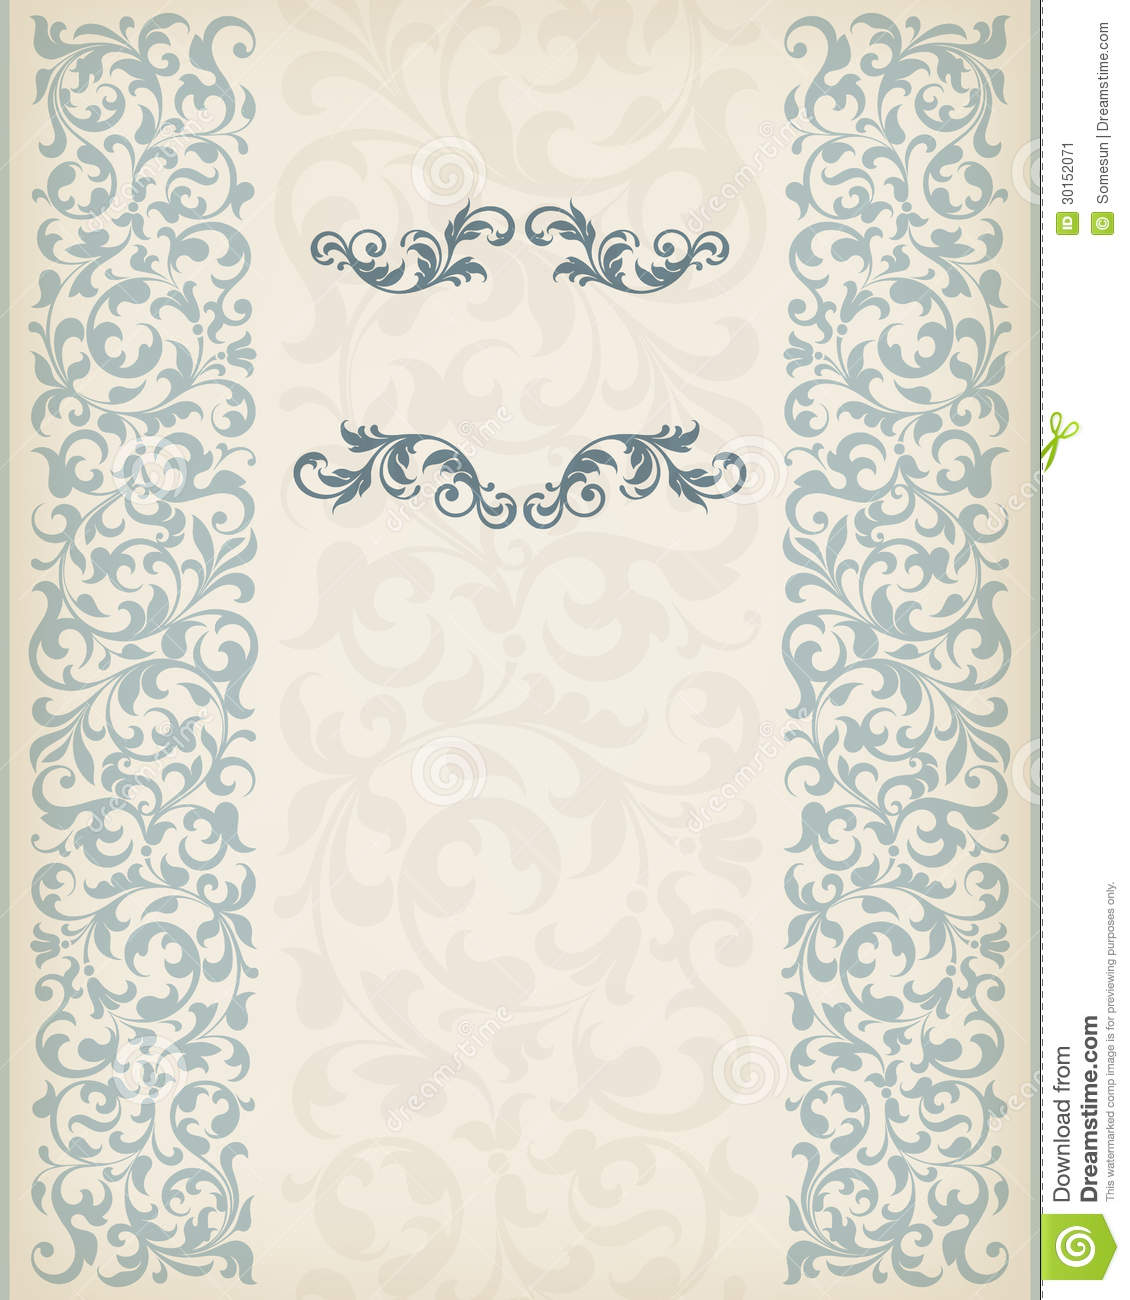 Vintage Border Frame Decorative Ornate Calligraphy Vector